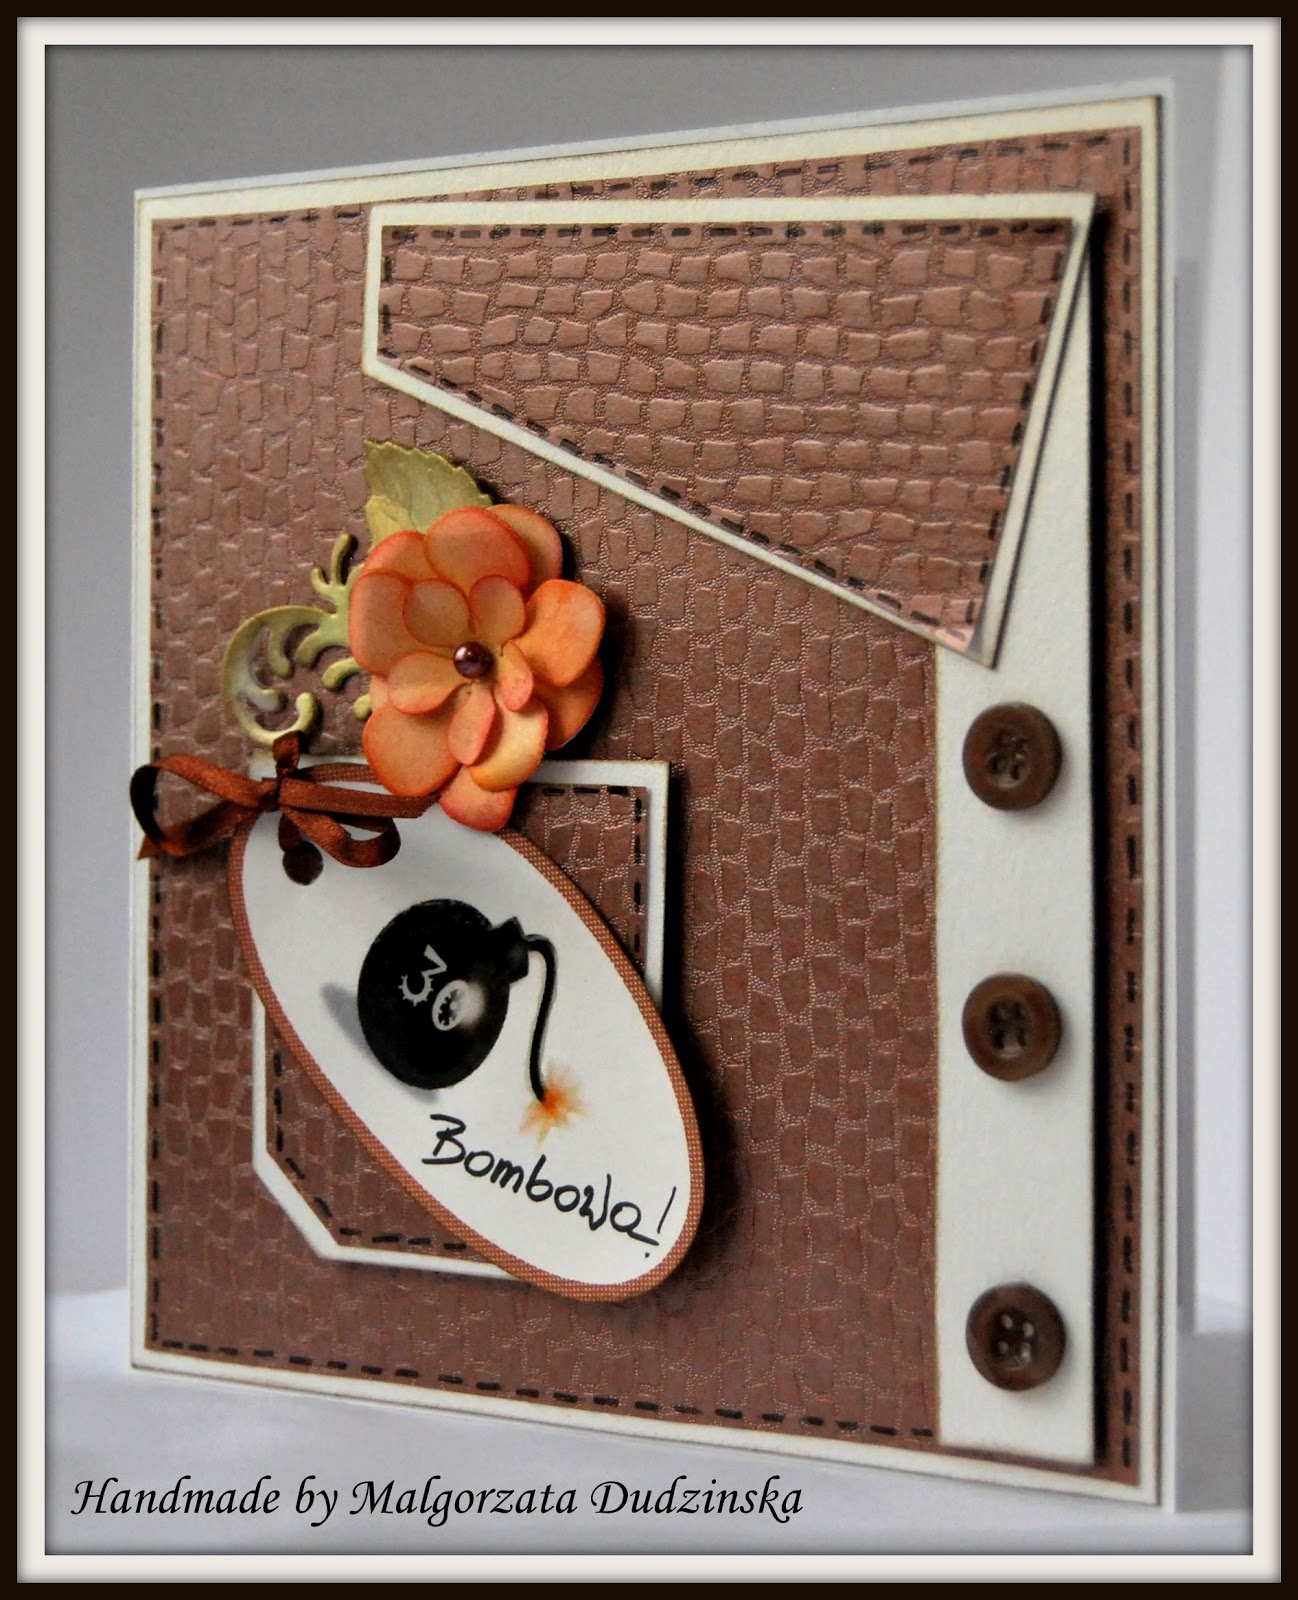 Good Moments Funny Birthday Card Ͽ�mieszna Kartka Urodzinowa: Margot Craft Corner: Bombowa 30